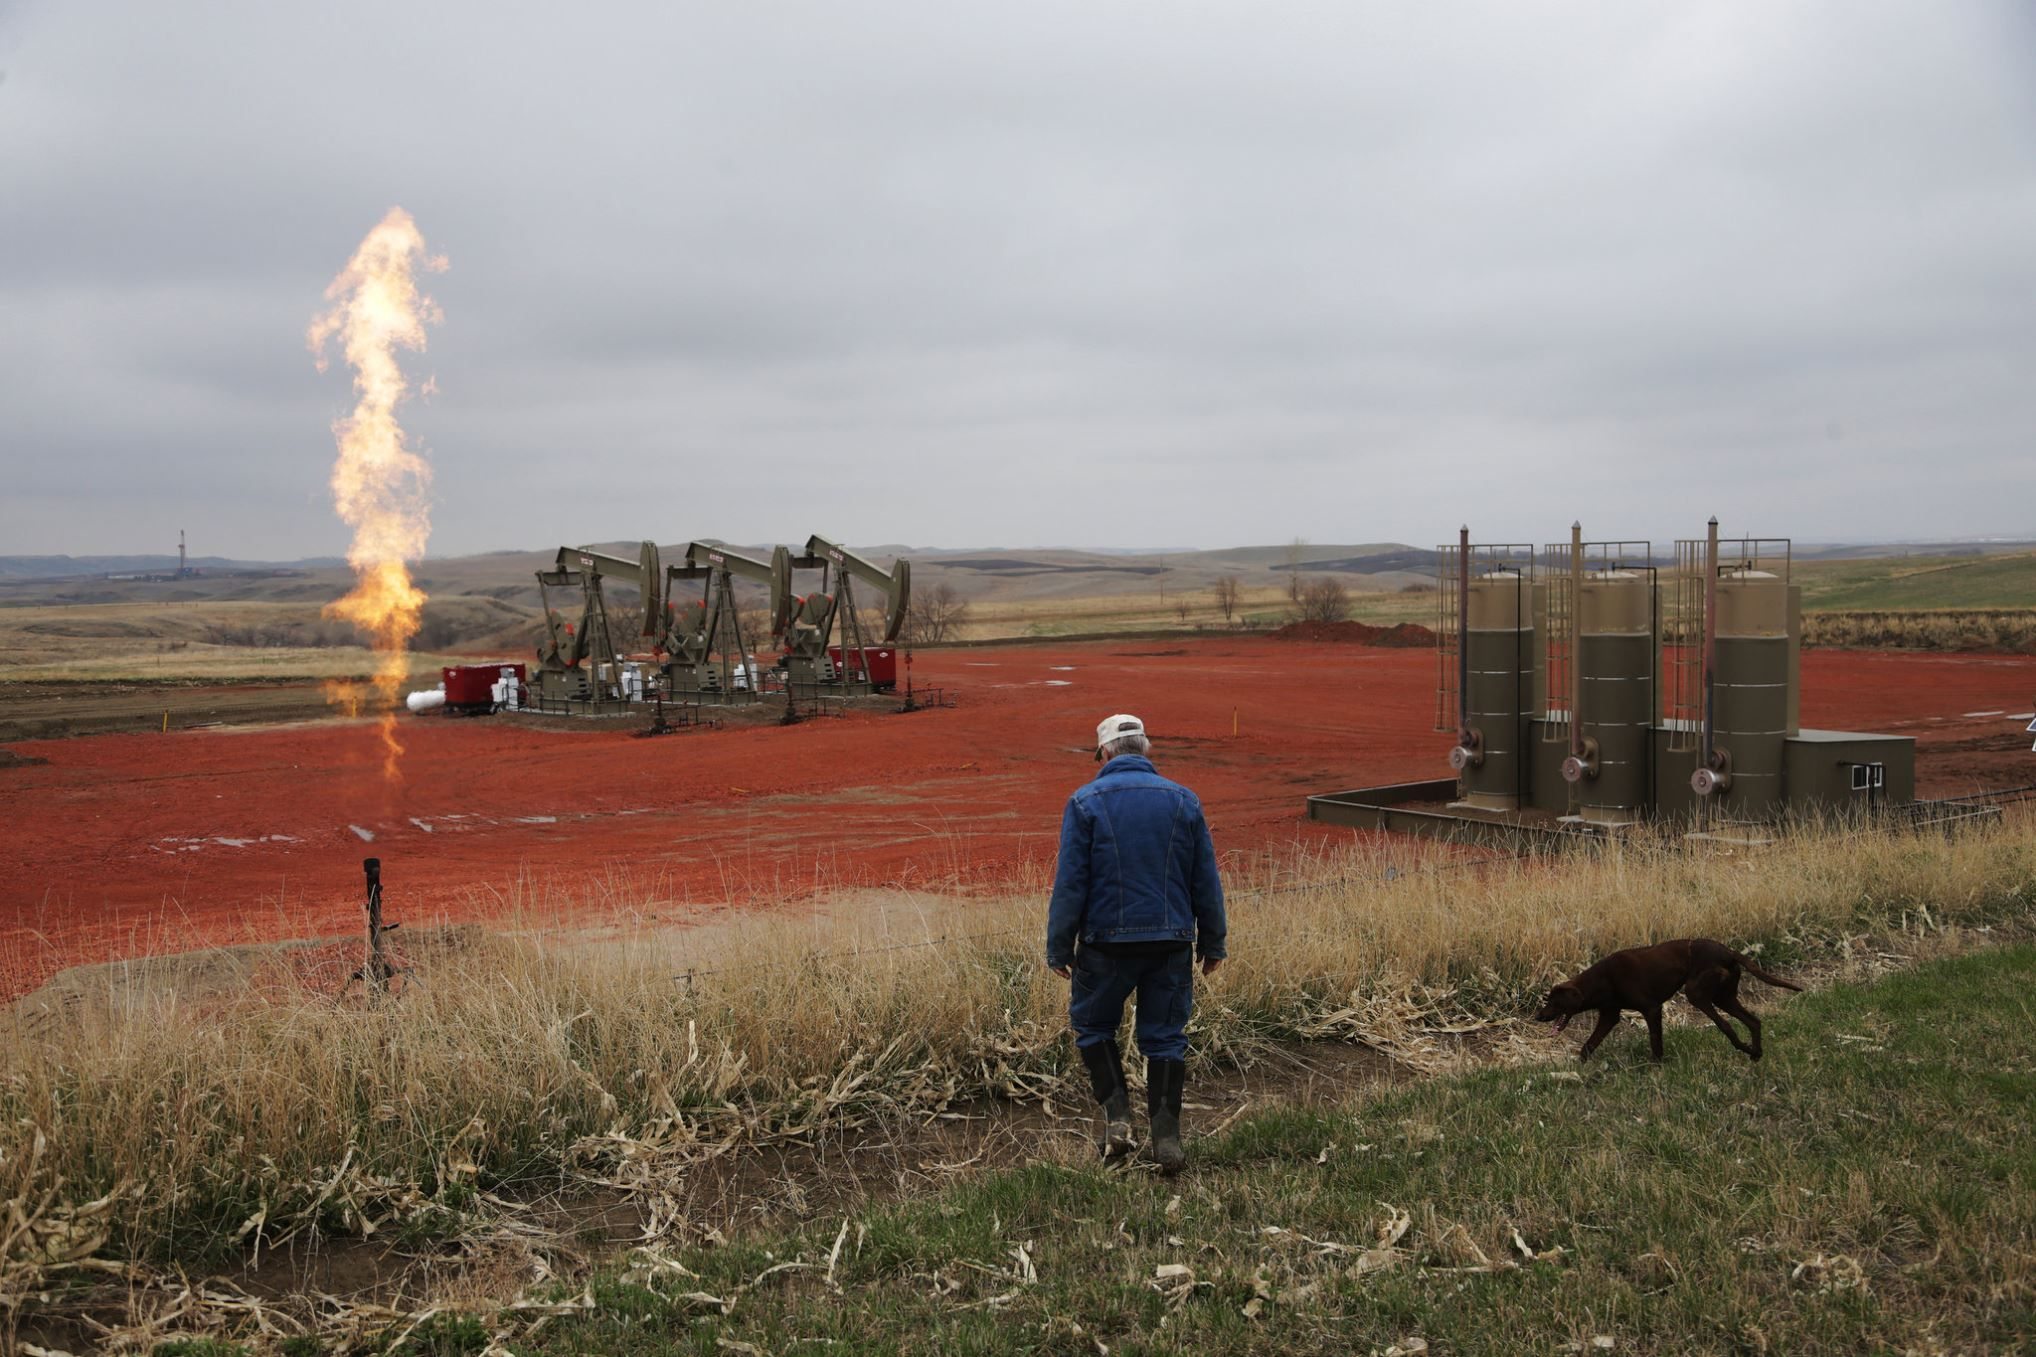 WORST Blowouts represent riskiest failure in the oil business. Yet, despite serious injuries and 115,000 gallons spilled in first 10 blowouts, North Dakota Industrial Commission, which regulates drilling and production of oil and gas, did not penalize Continental until 11th. In recent years, number of reported spills, leaks, fires and blowouts has soared, with an increase in spillage that outpaces increase in oil production, investigation by The New York Times found. Jim Wilson/The NY Times